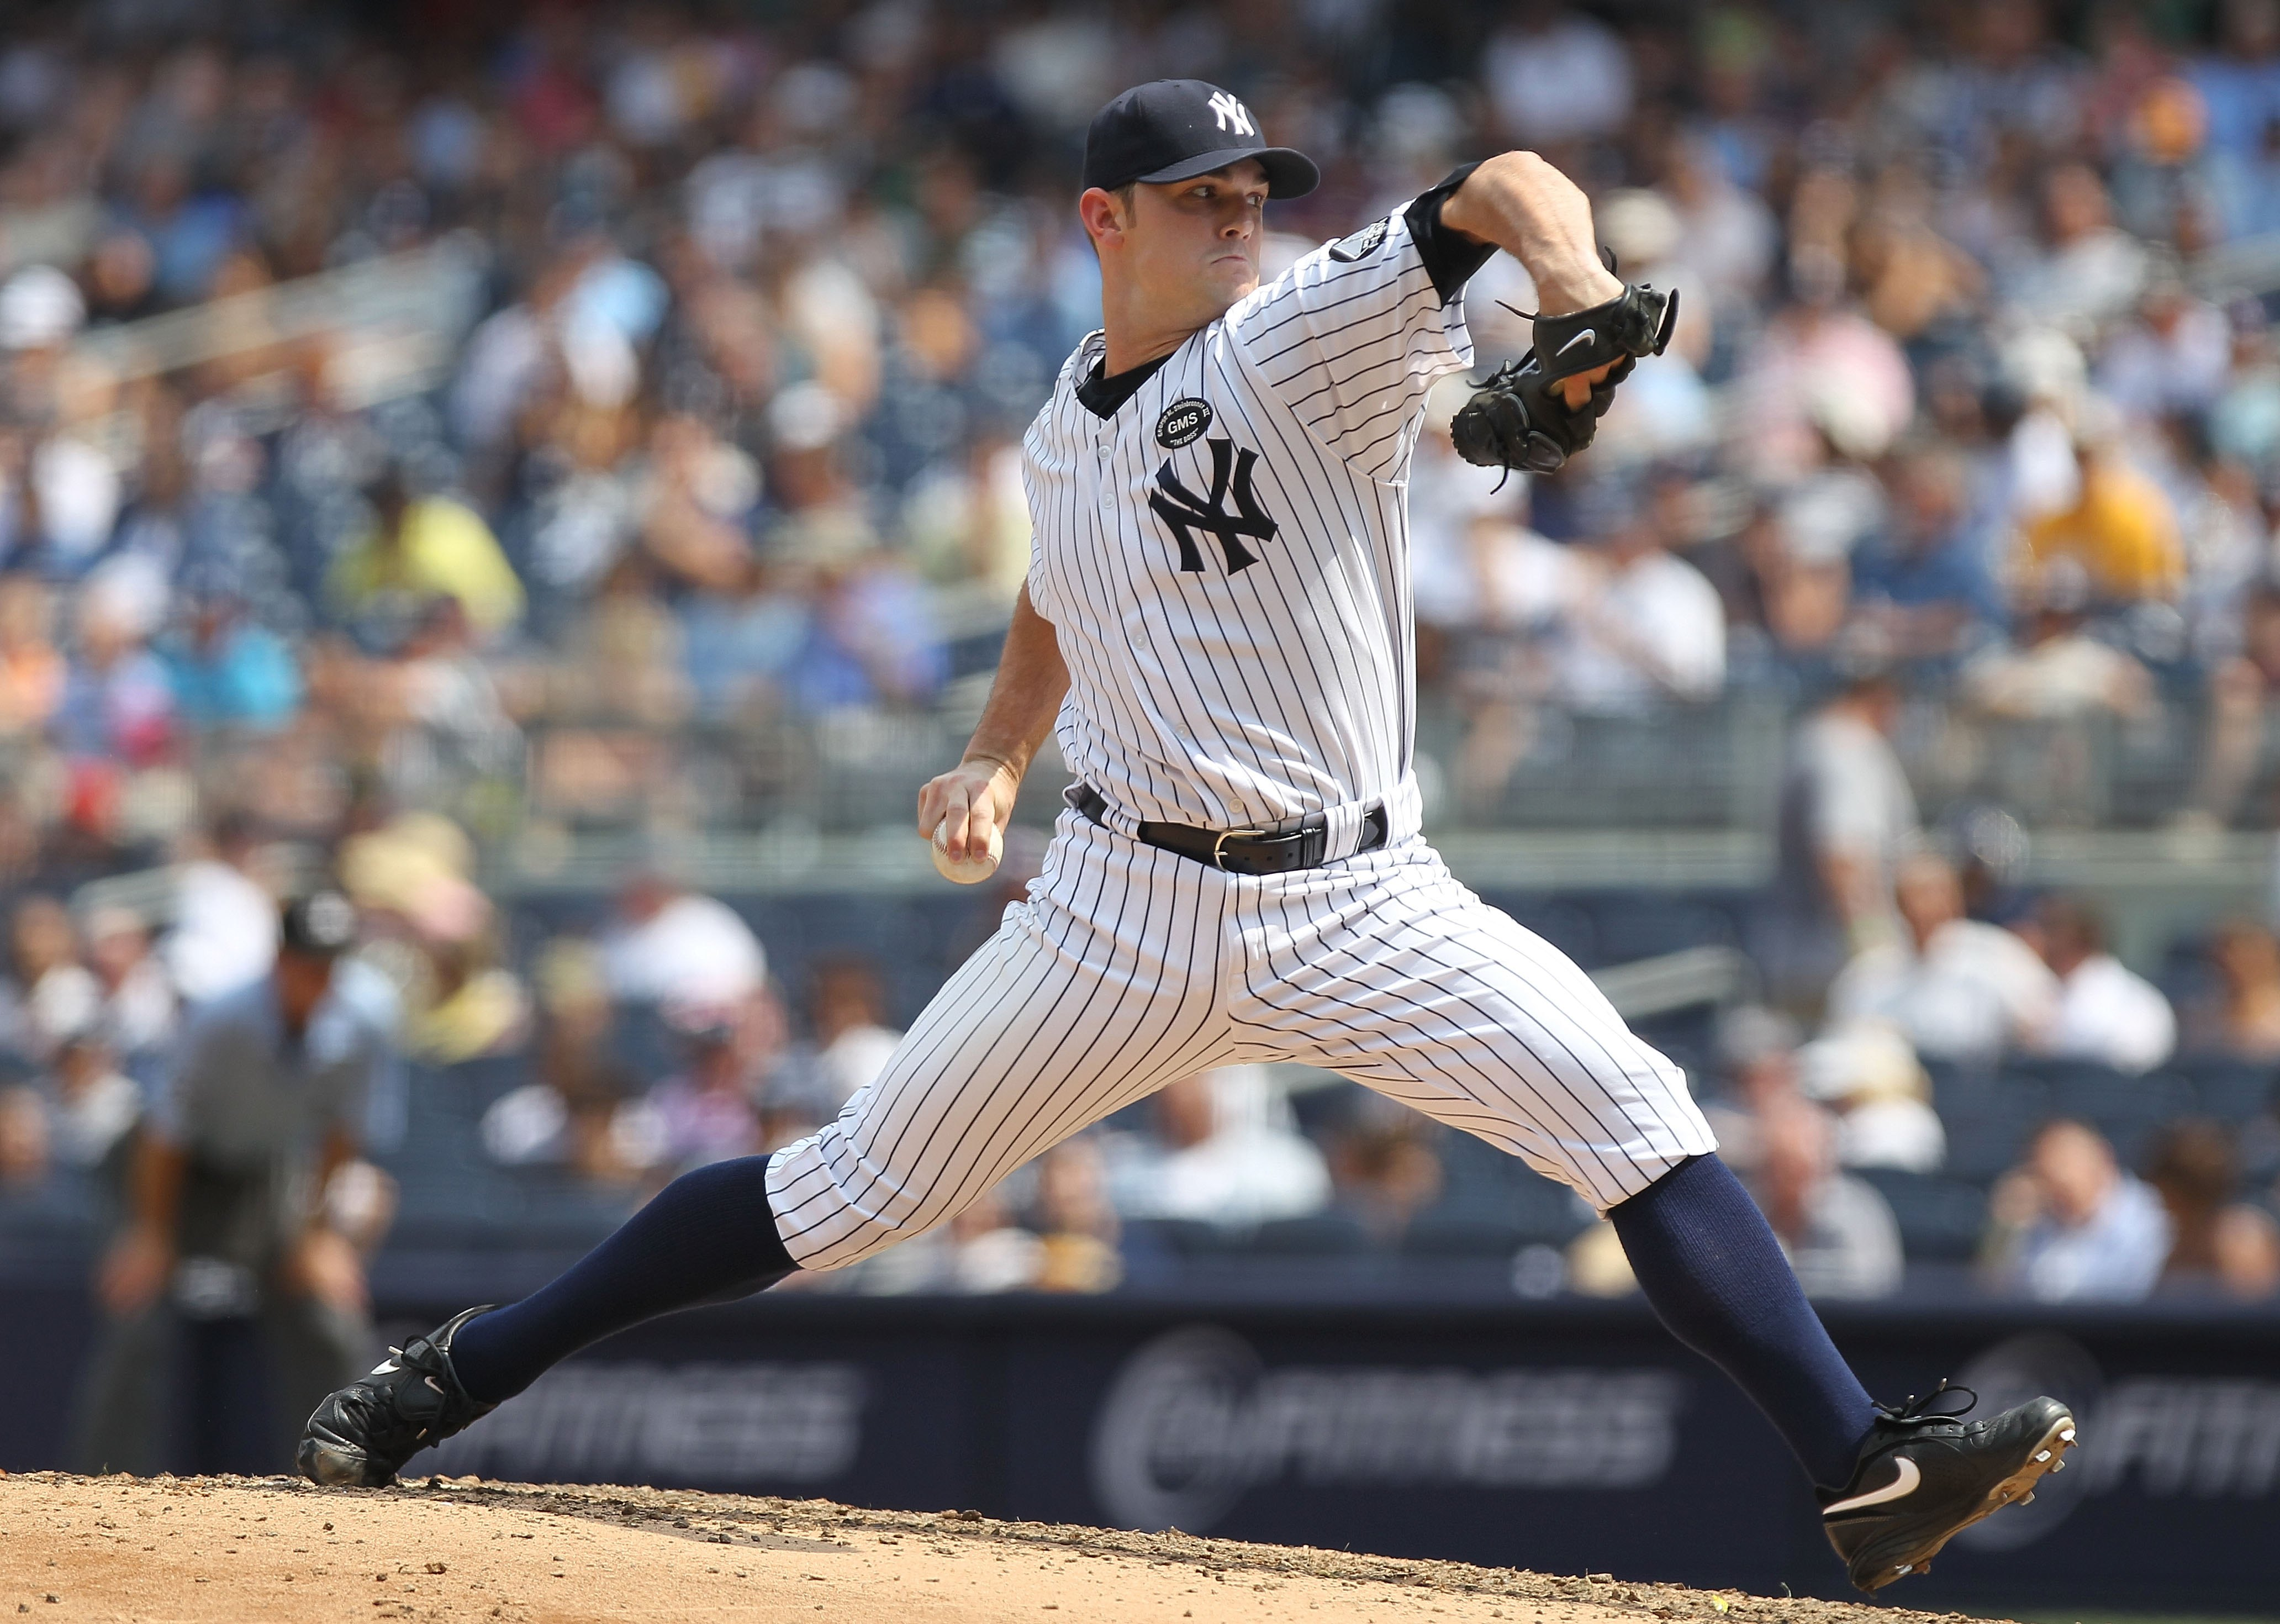 NEW YORK - JULY 21:  David Robertson #30 of the New York Yankees pitches against the Los Angeles Angels of Anaheim at Yankee Stadium on July 21, 2010 in the Bronx borough of New York City.  (Photo by Nick Laham/Getty Images)